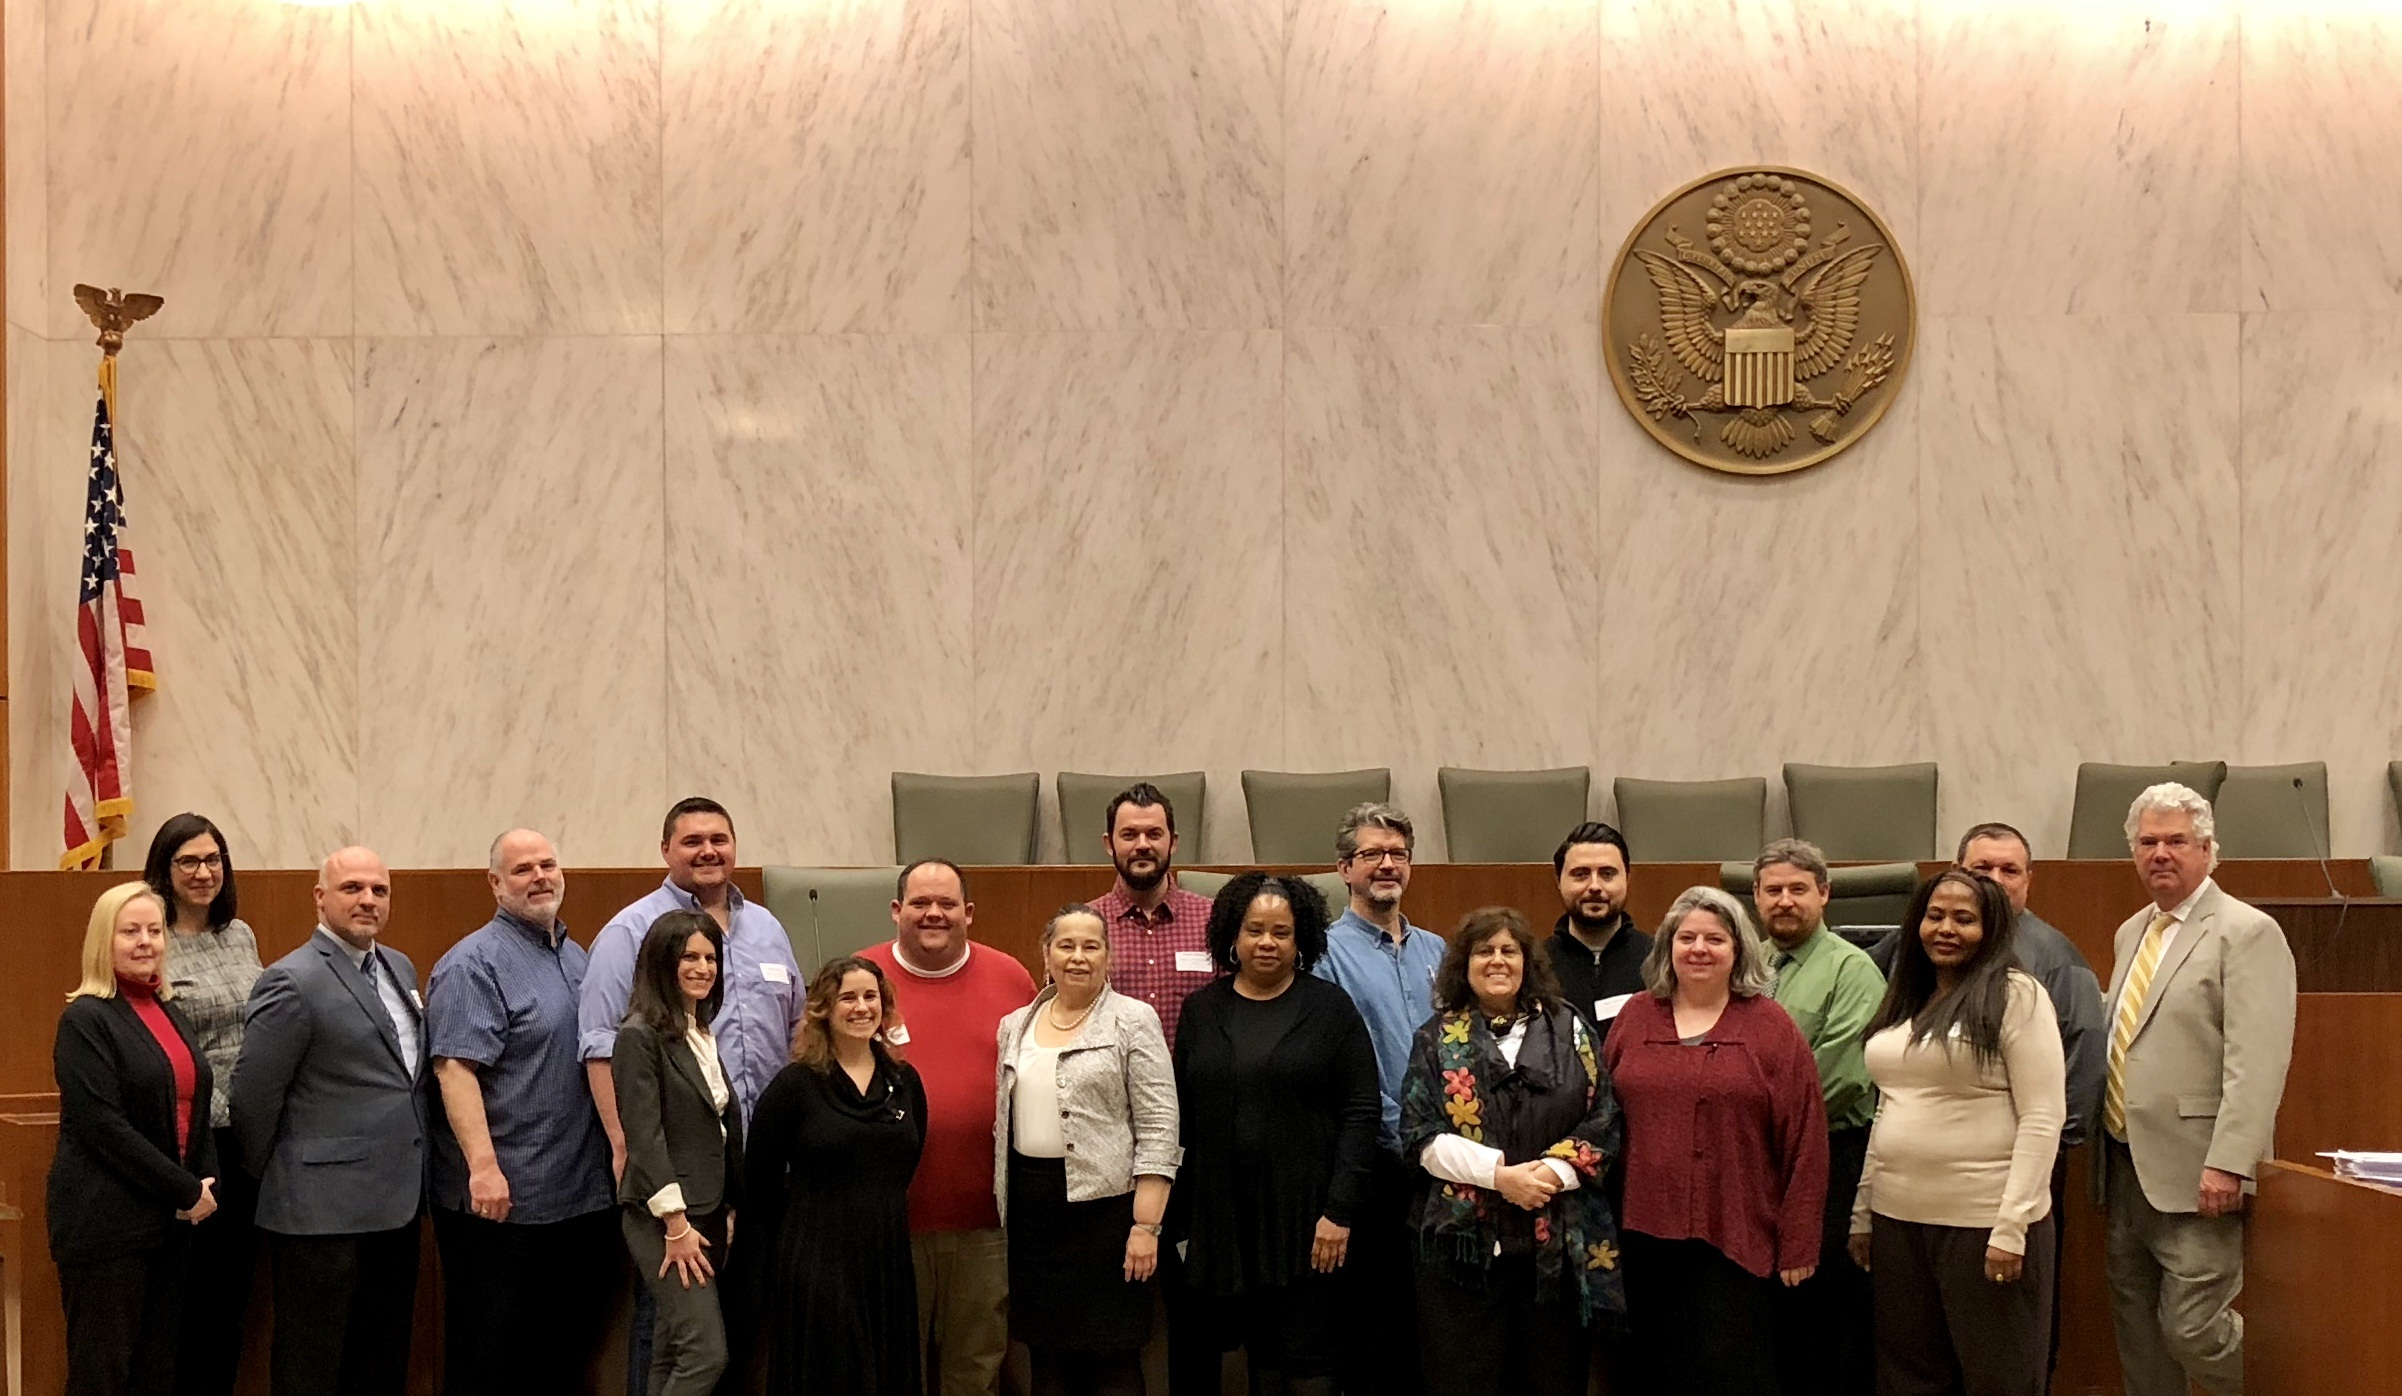 Law Enforcement Professional Development at the Eastern District Federal Court